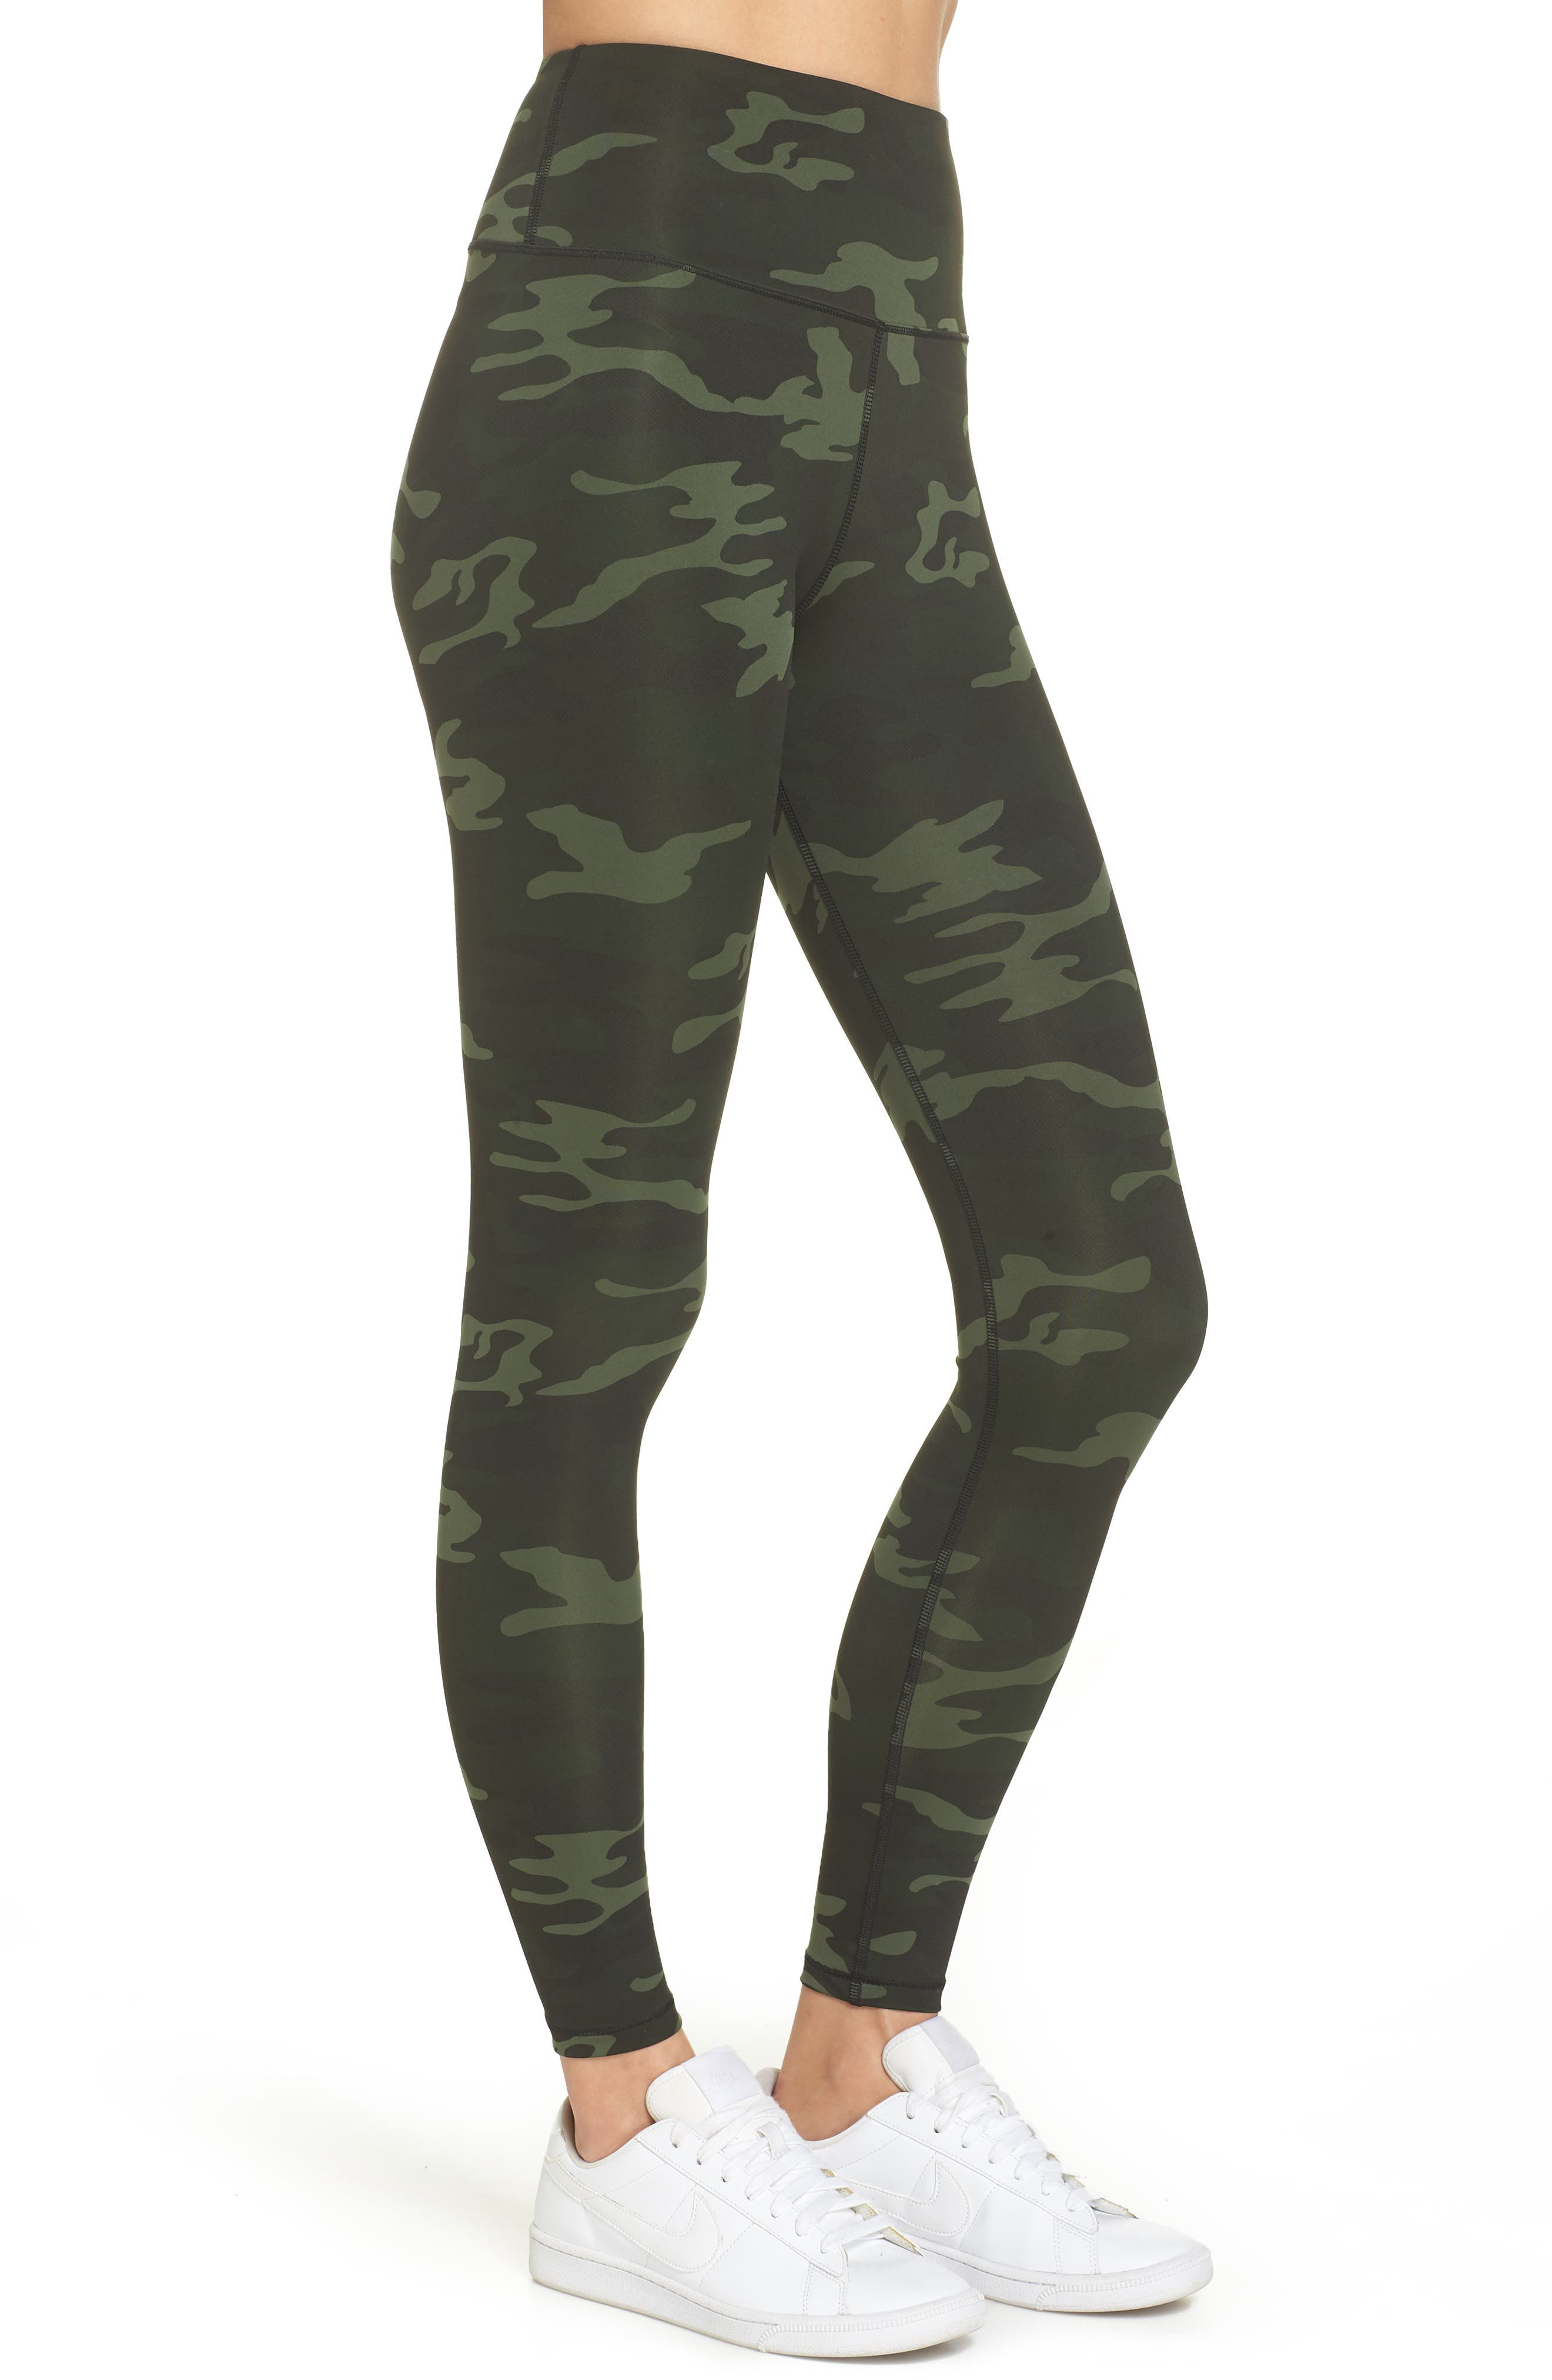 GOOD AMERICAN, Core Strength High Waist Leggings, Alternate thumbnail 4, color, CAMO001